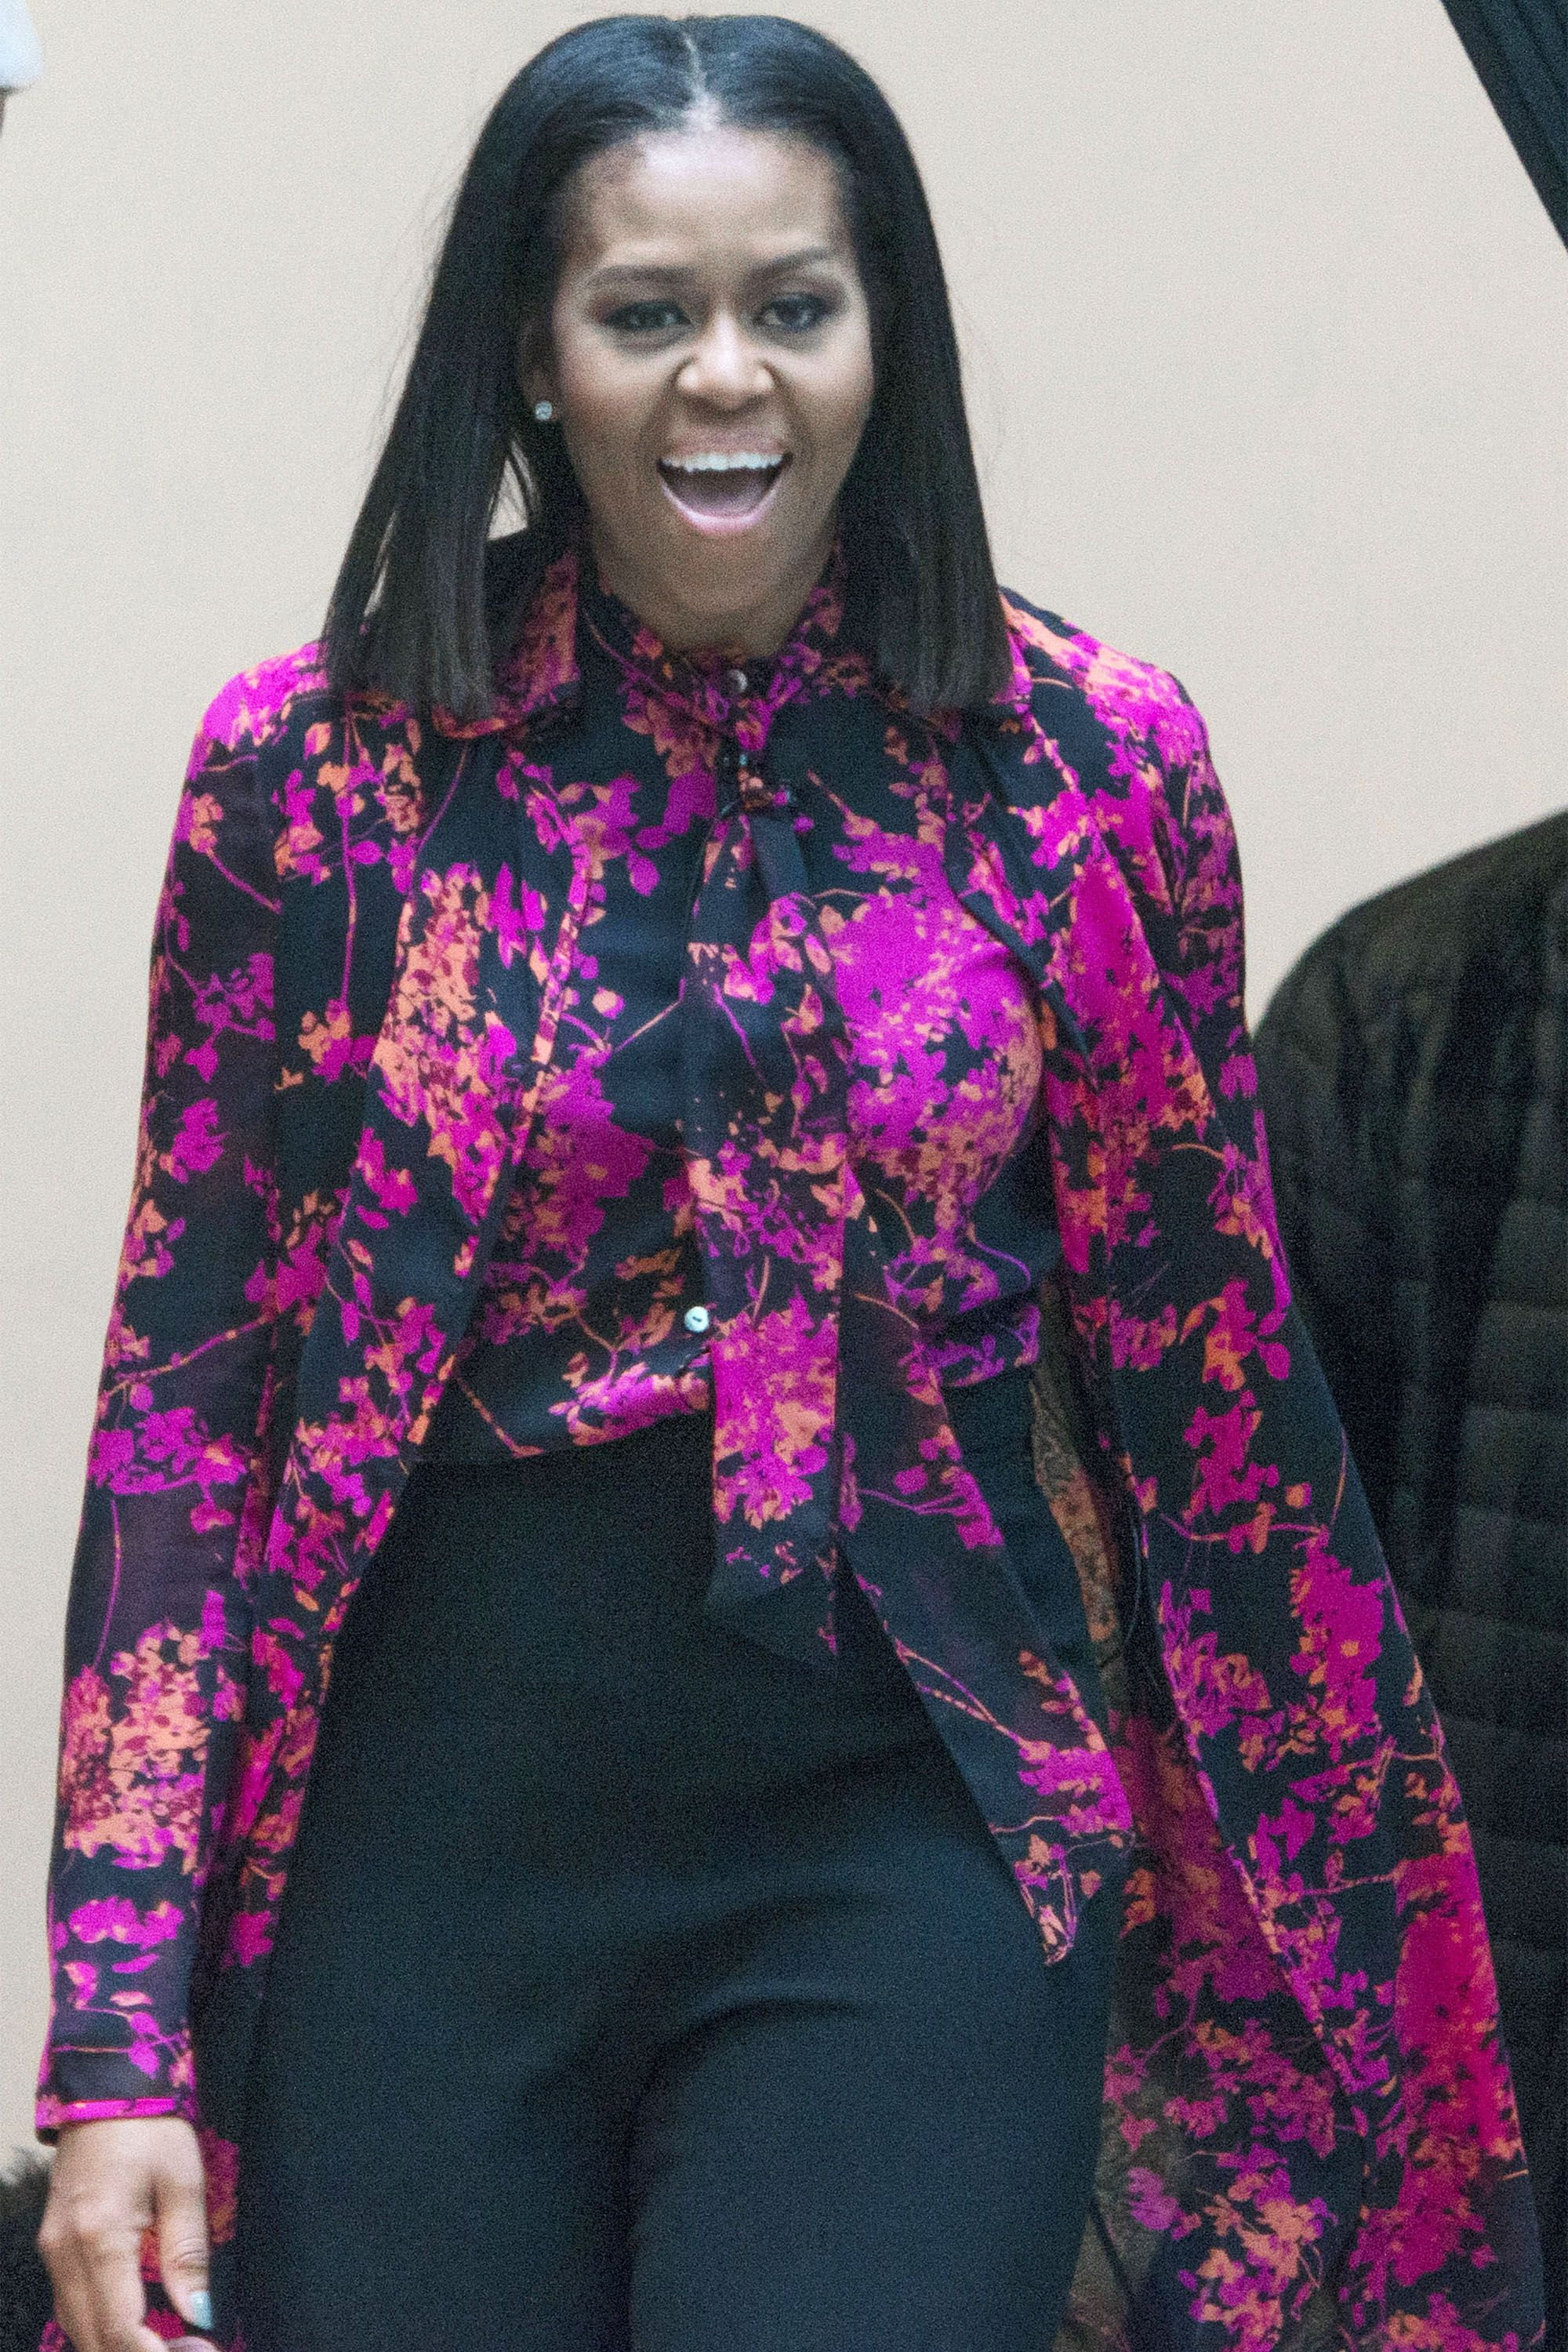 ff5500ac8 Michelle Obama s Best Looks - Michelle Obama Style Fashion and Outfits